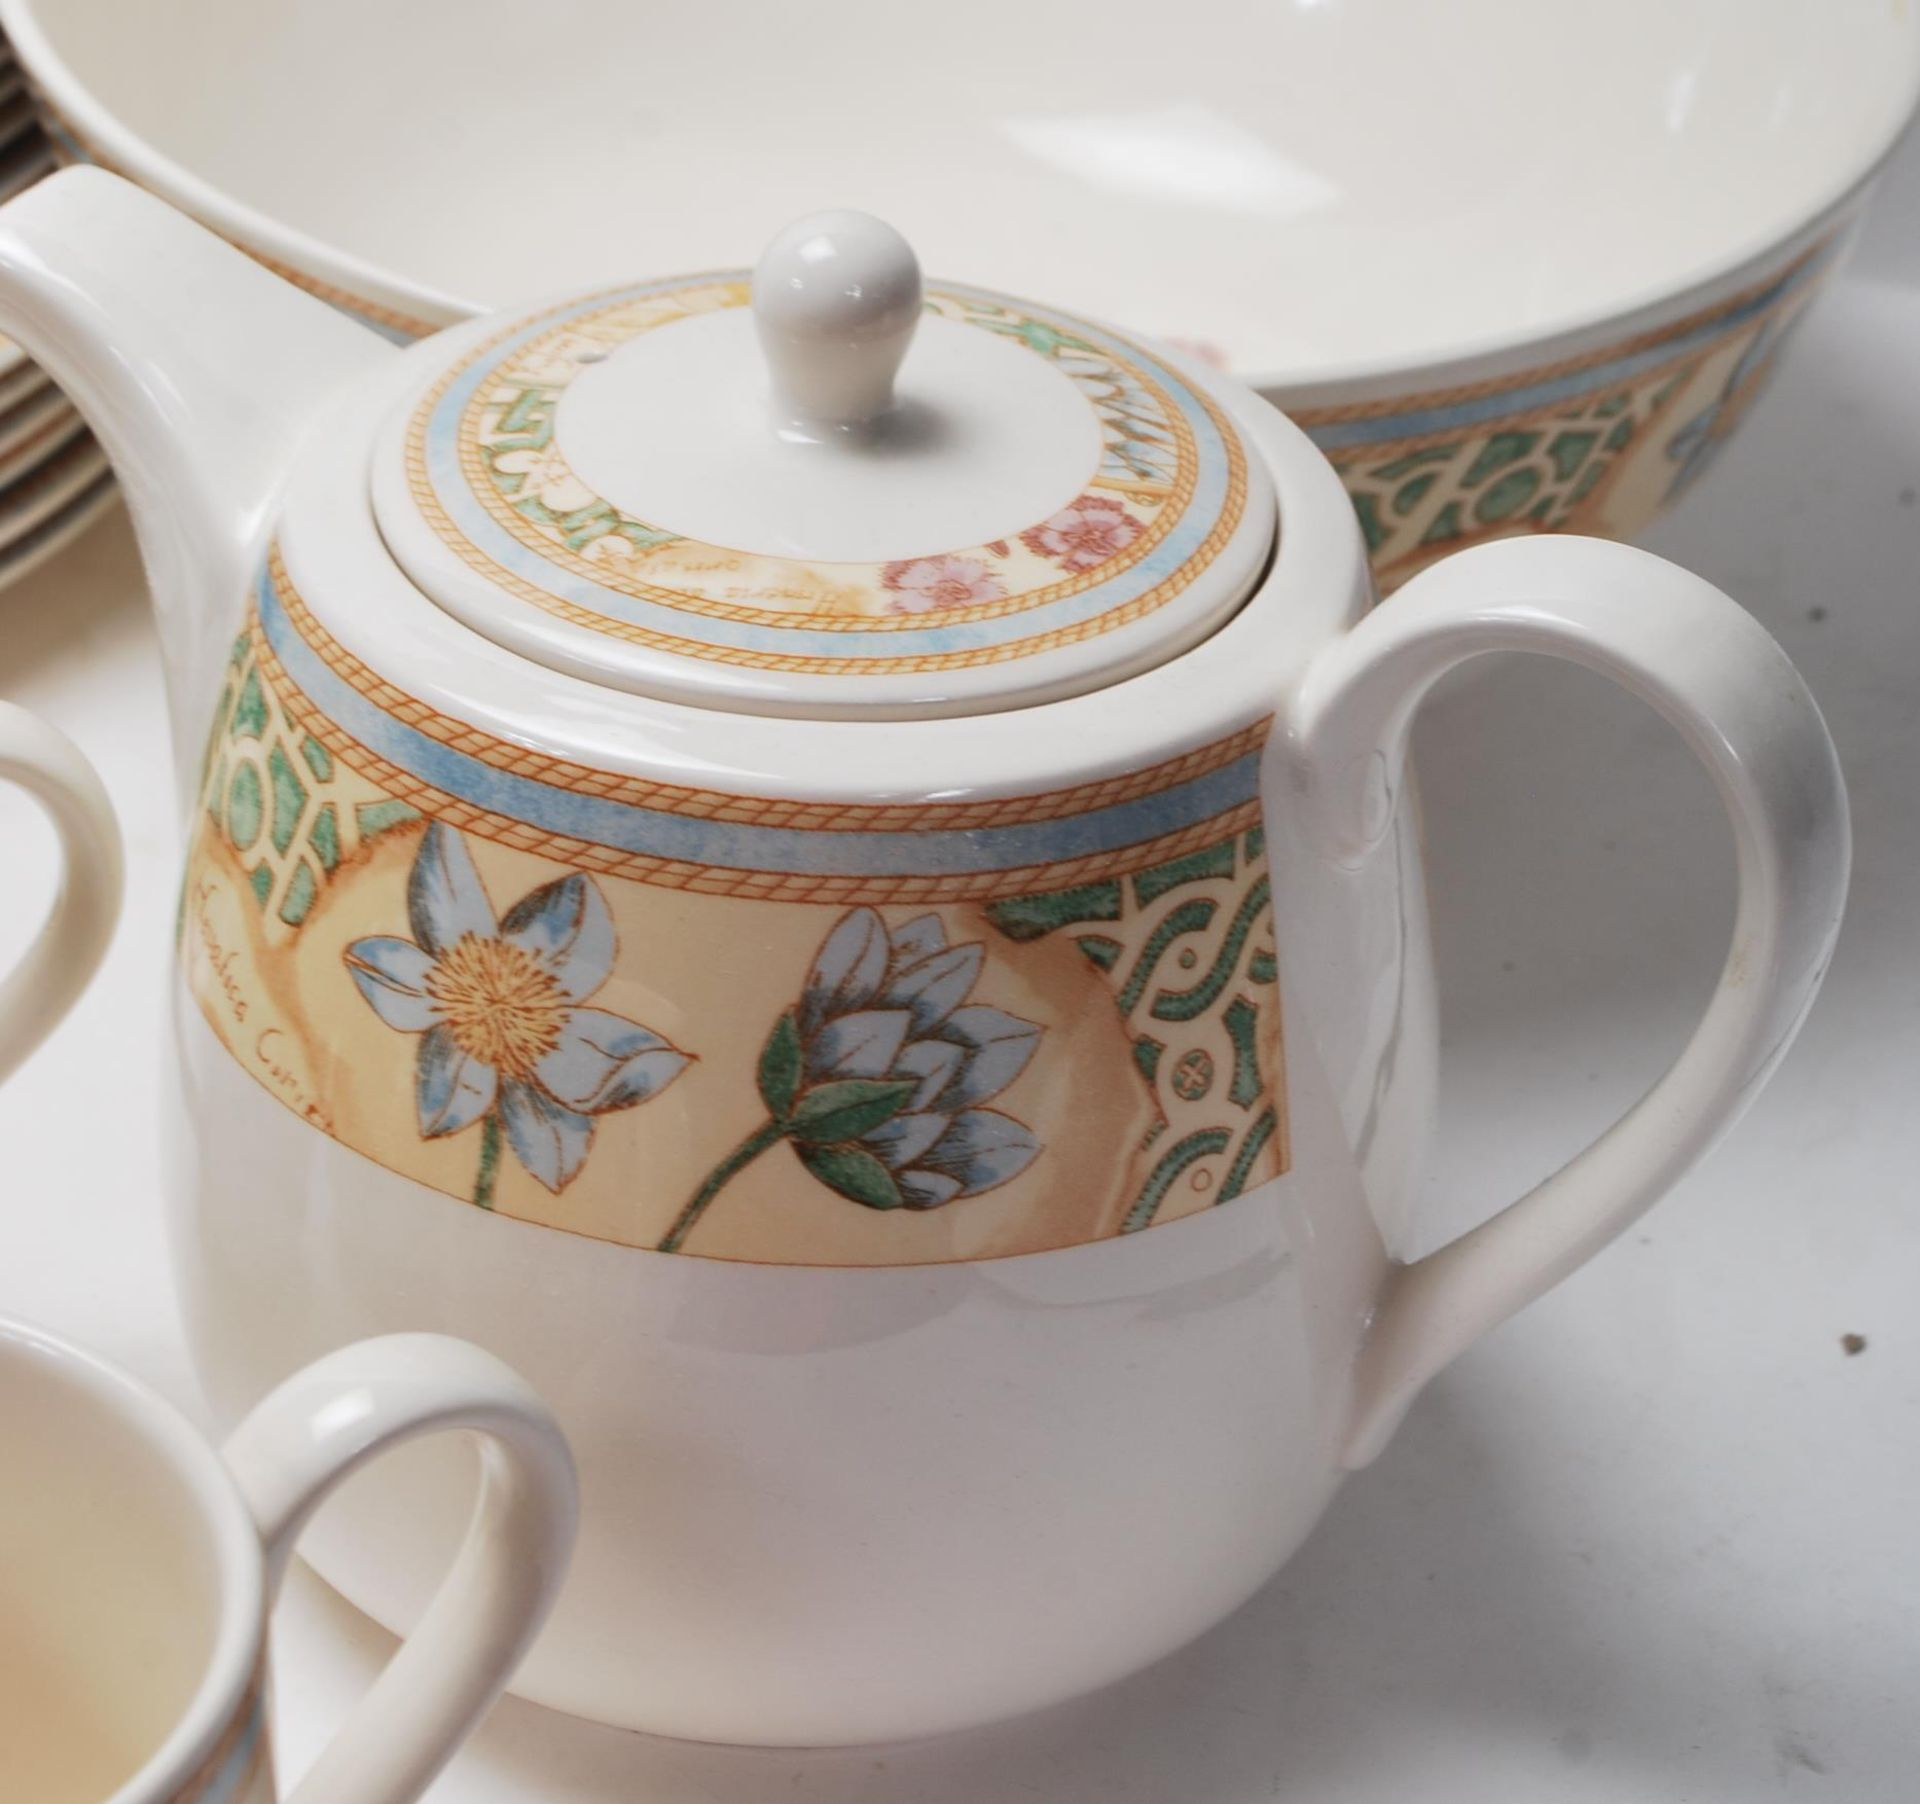 A LARGE 20TH CENTURY WEDGWOOD DINNER SERVICE WITH GRDEN MAZE PATTERN - Image 5 of 11